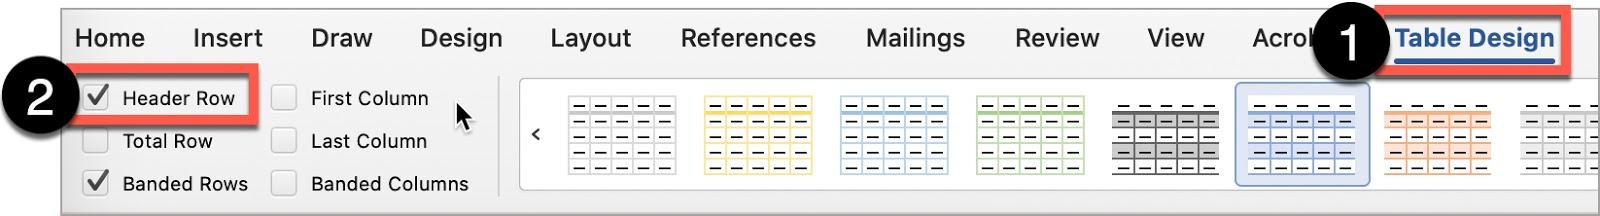 In the Microsoft Word Table Design ribbon, to create a header row, ensure the Header Row box is checked.